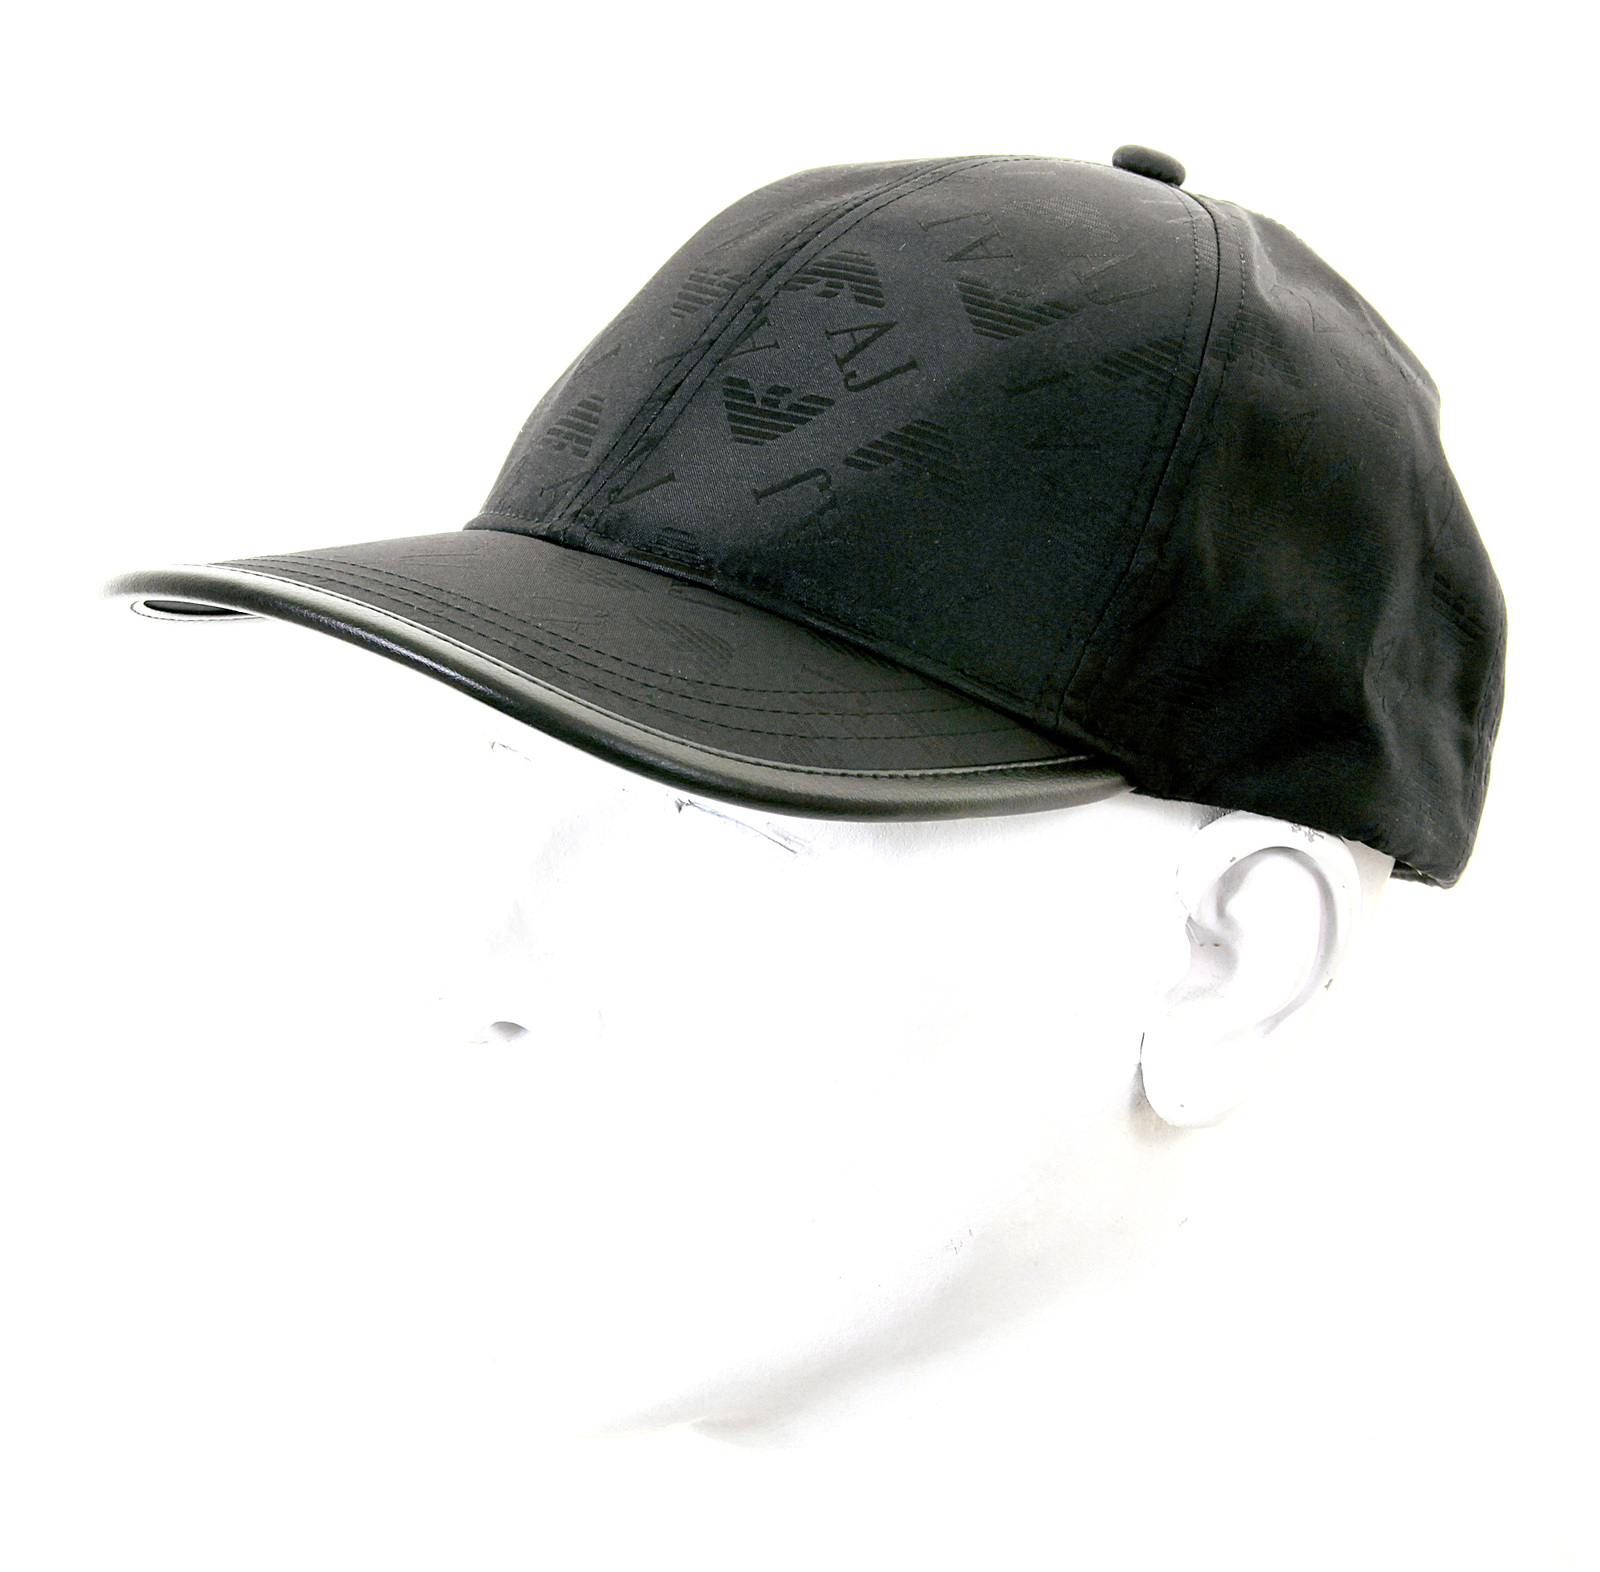 Armani Jeans black monogram baseball cap 06482 YS AJM1204 at Togged Clothing 15beb71ff71